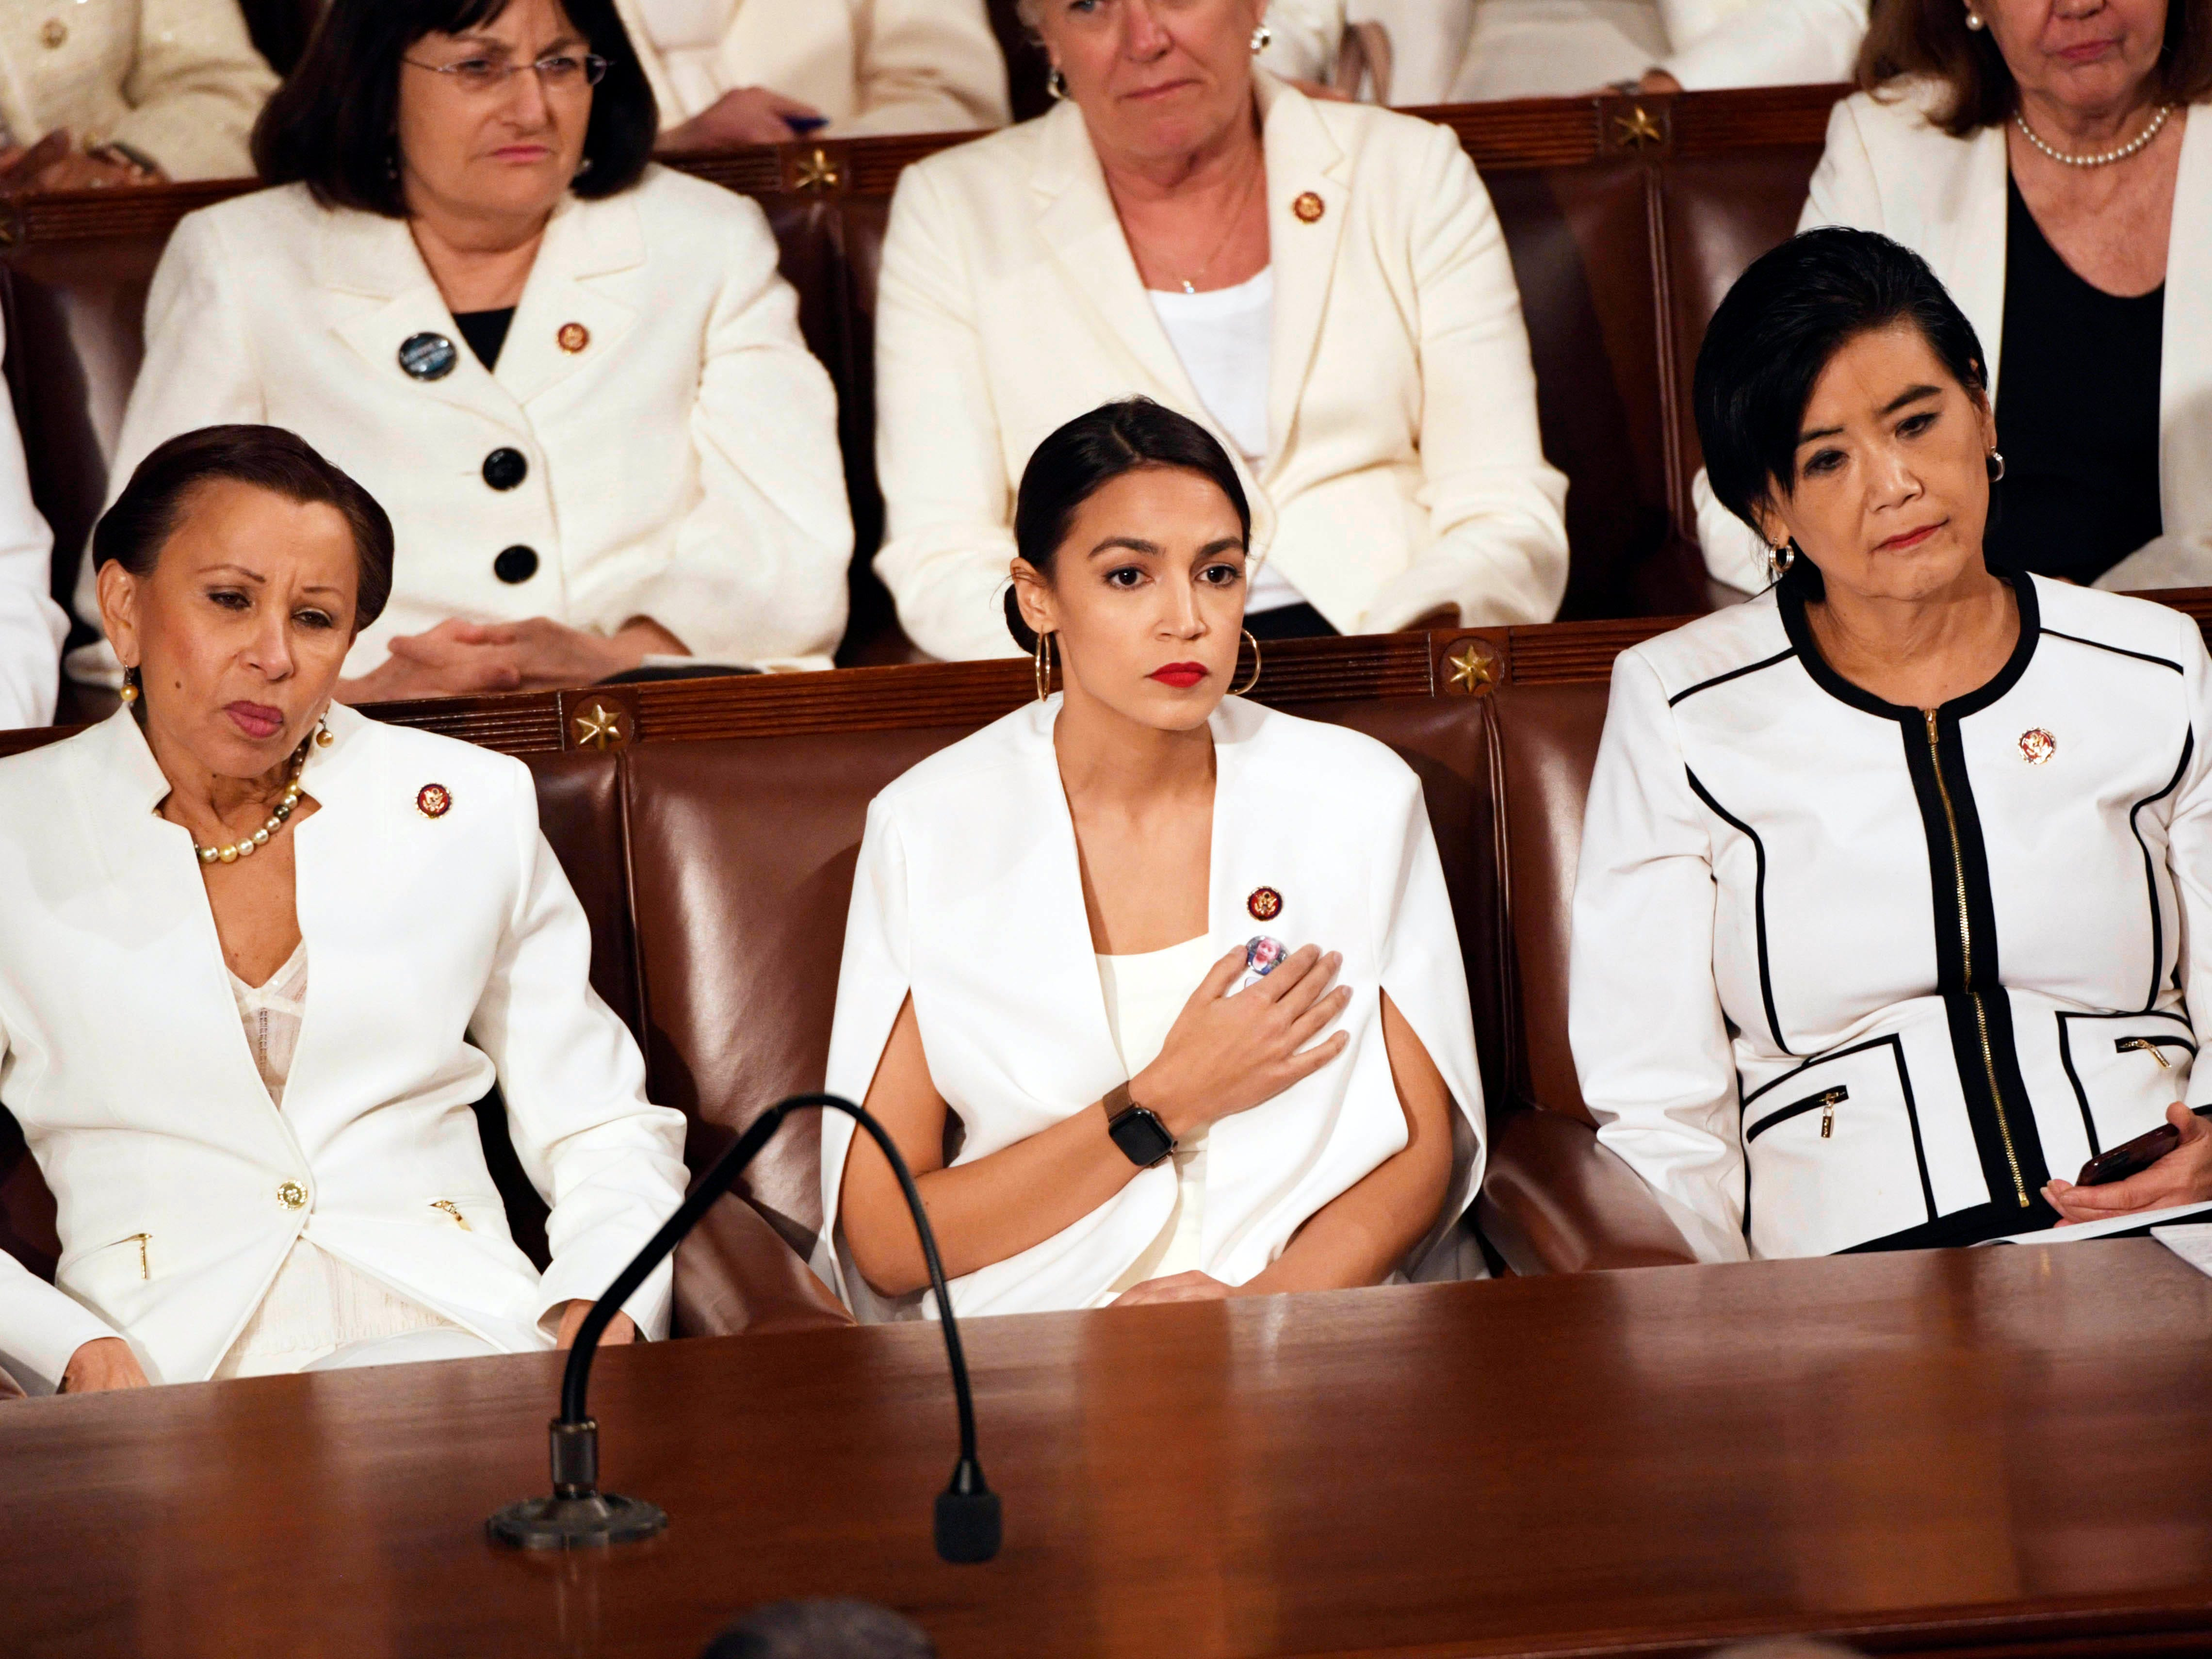 Feb 5, 2019; Washington, DC, USA; Rep. Alexandria Ocasio-Cortez (D-N.Y.) and other Congresswomen wear white as they listen as President Donald Trump delivers the State of the Union address from the House chamber of the United States Capitol in Washington.  Mandatory Credit: Jasper Colt-USA TODAY NETWORK ORIG FILE ID:  20190205_sal_usa_5267.JPG